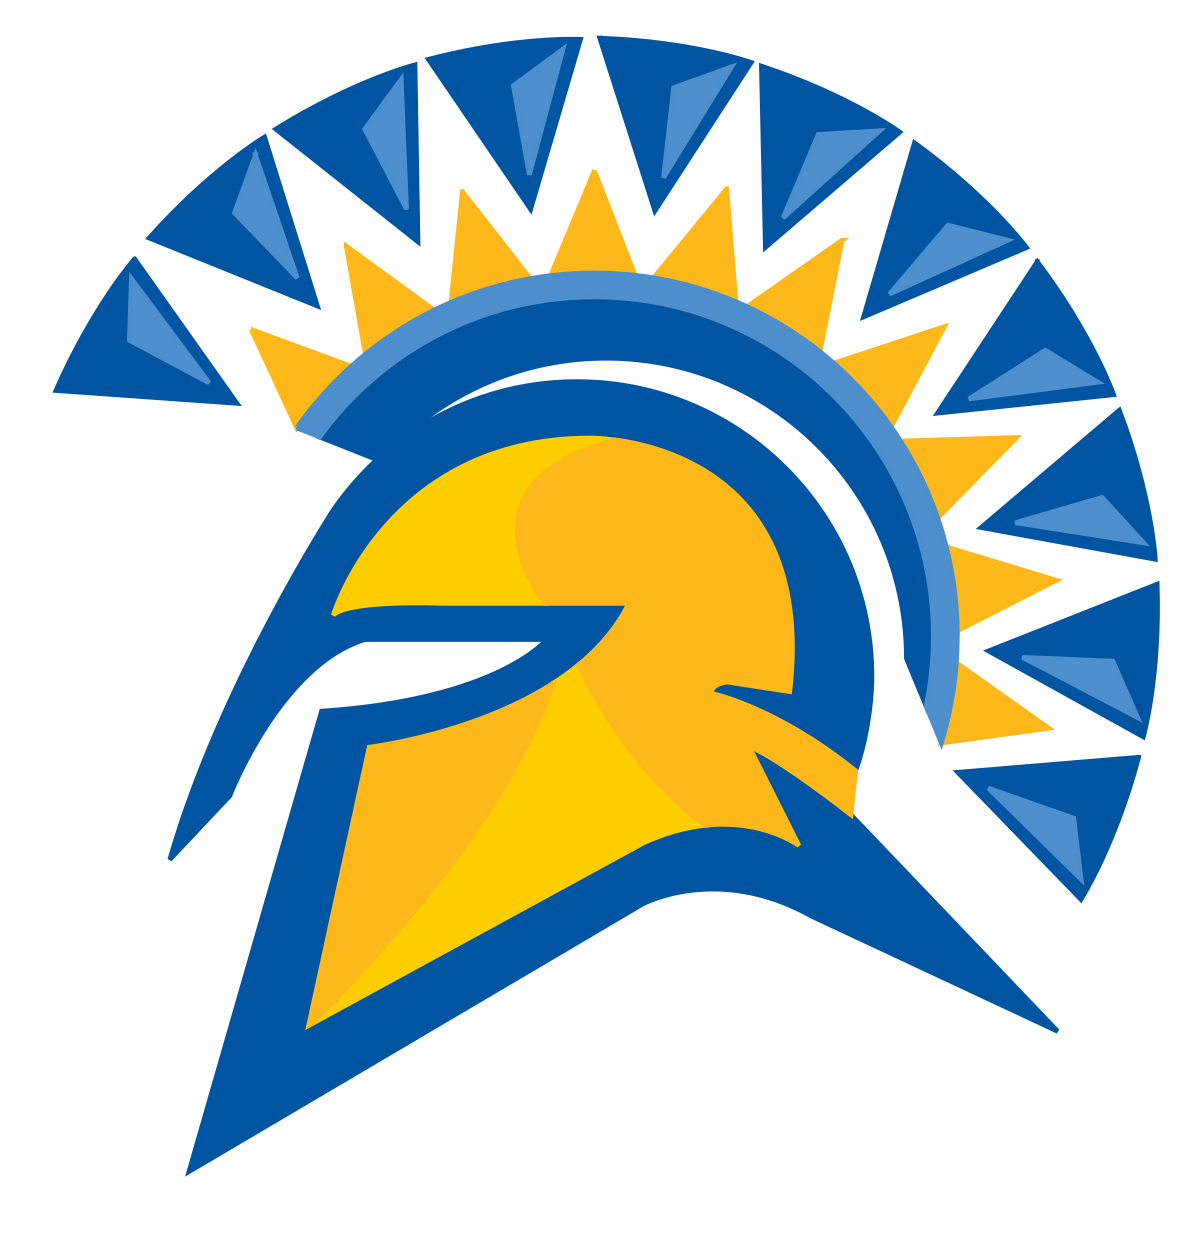 San jose state university logo clipart graphic freeuse stock San Jose State Spartans - Wikipedia graphic freeuse stock